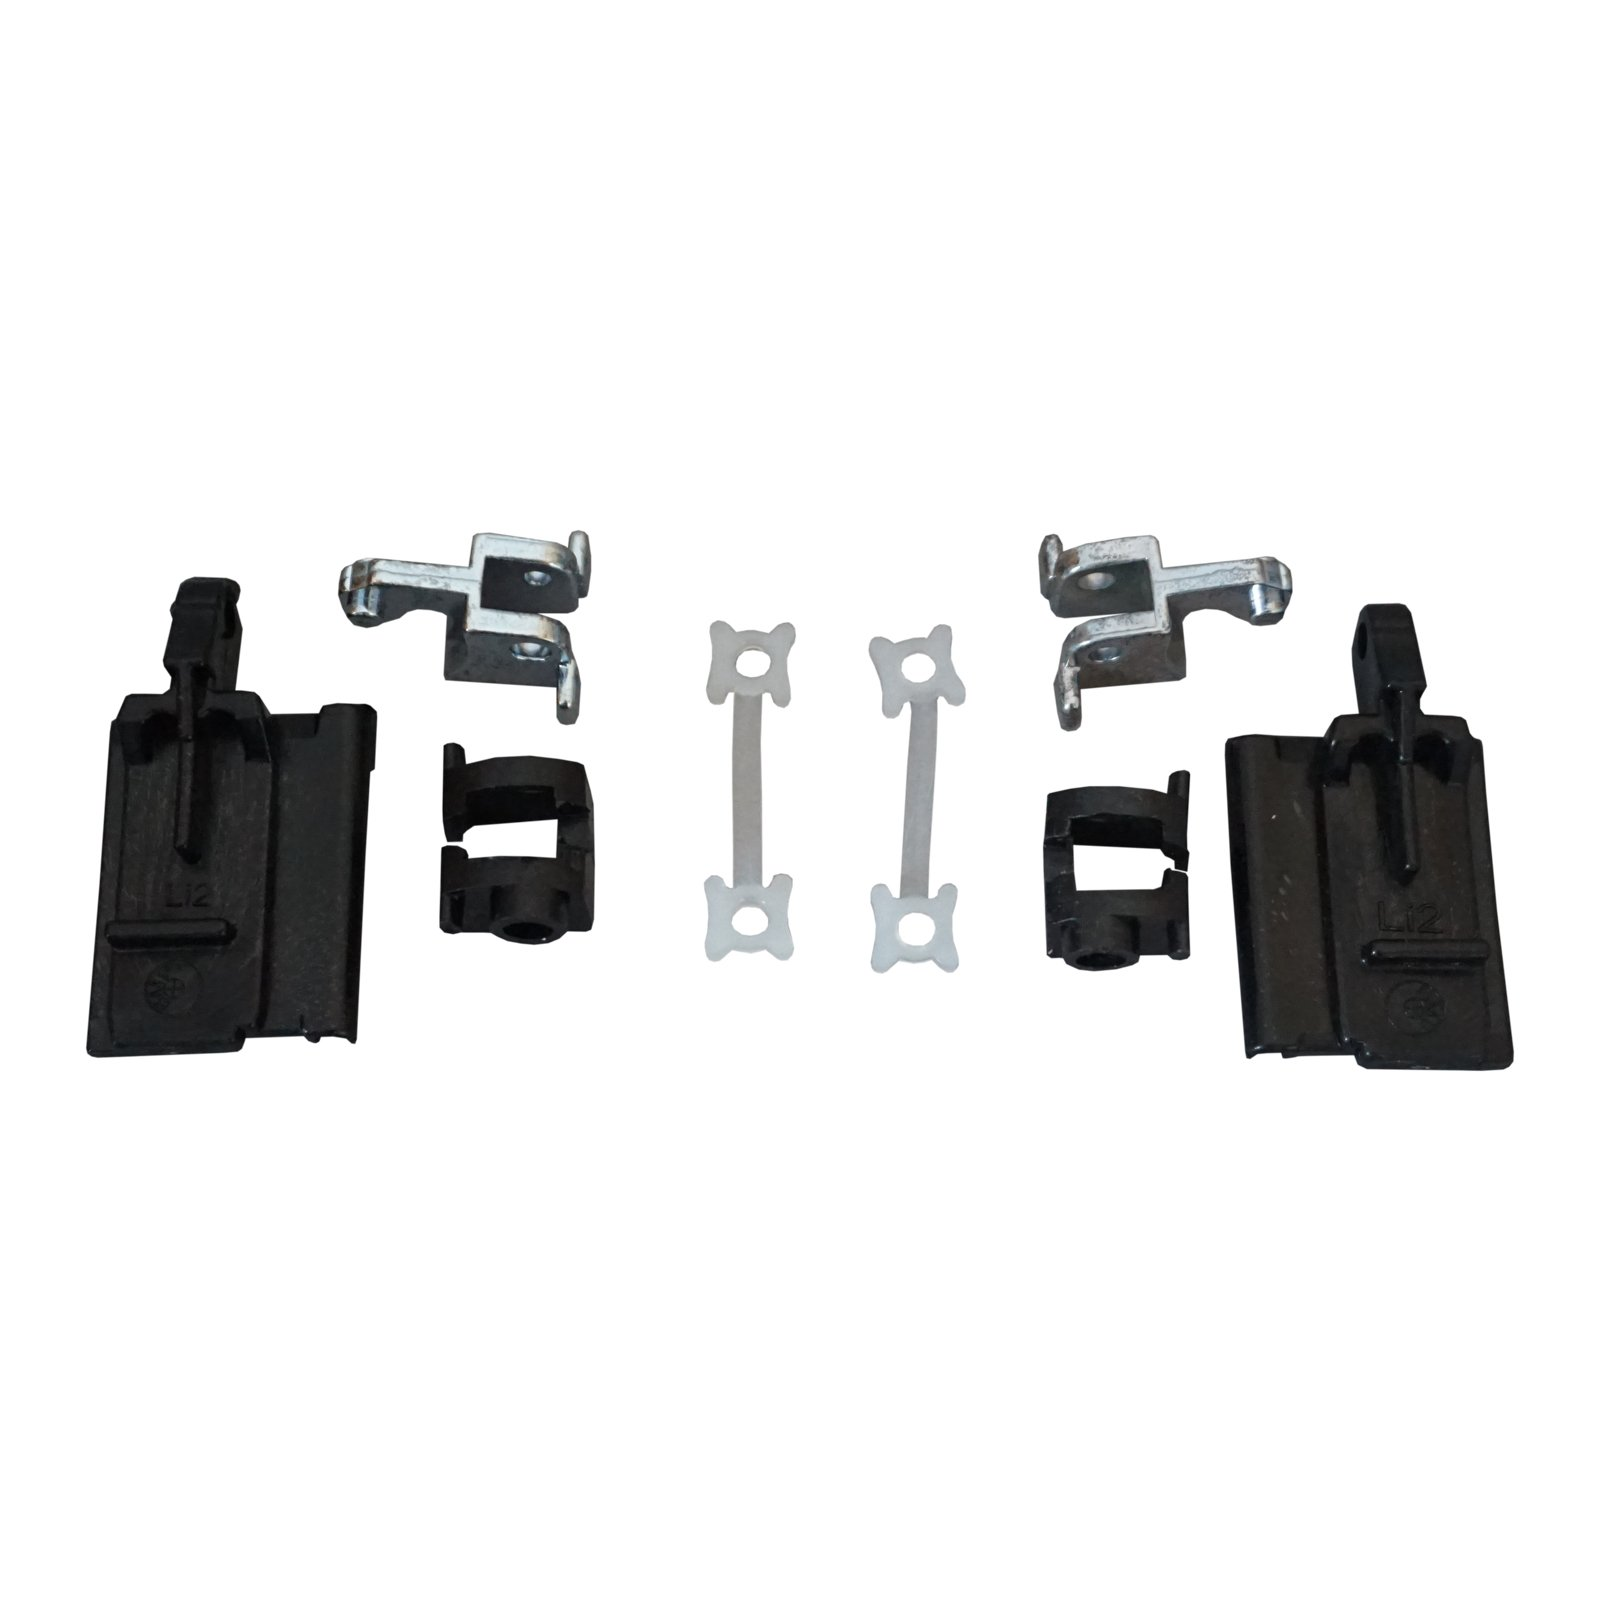 Bross BSR531+BSR532 8 Pieces Sunroof Slider Guide Rail Set Left AND Right Side for BMW 3 Series E36 1992-1999 by Bross